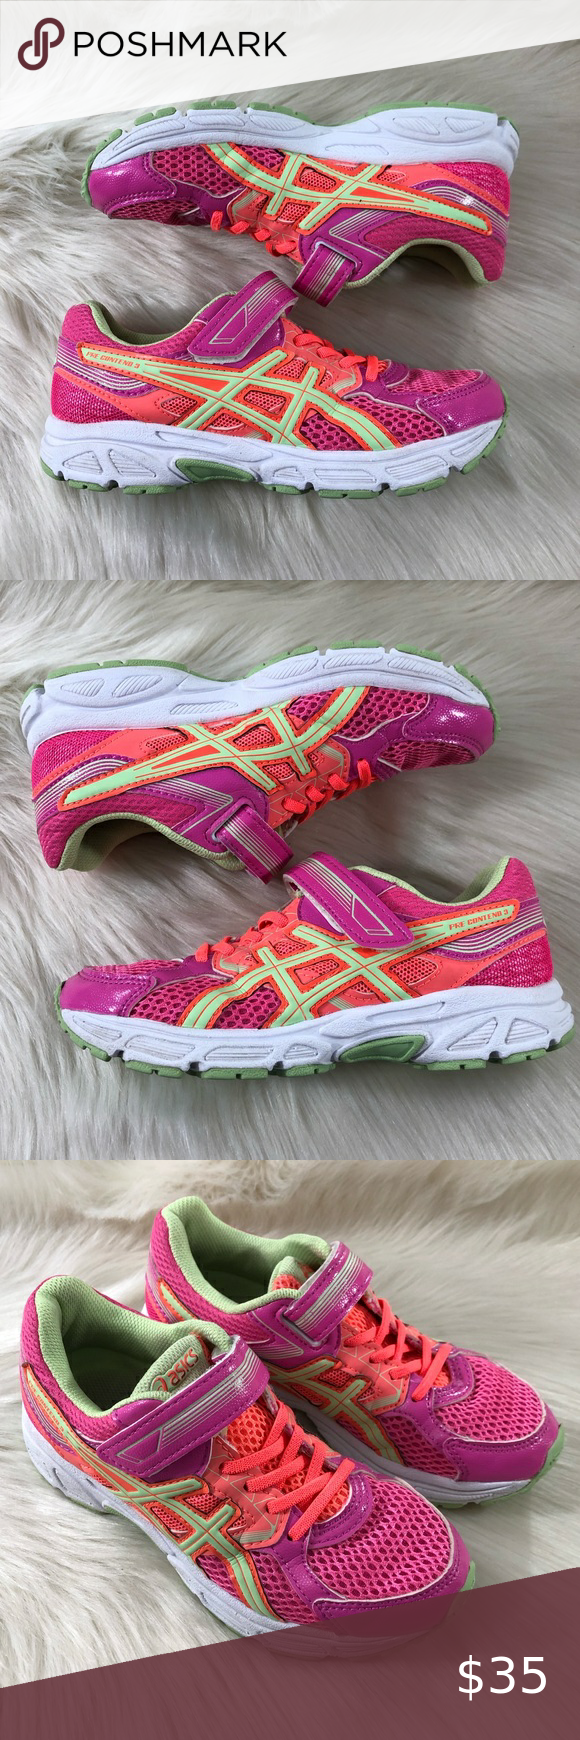 Asics Pre Contend 3 Girls Sneakers in